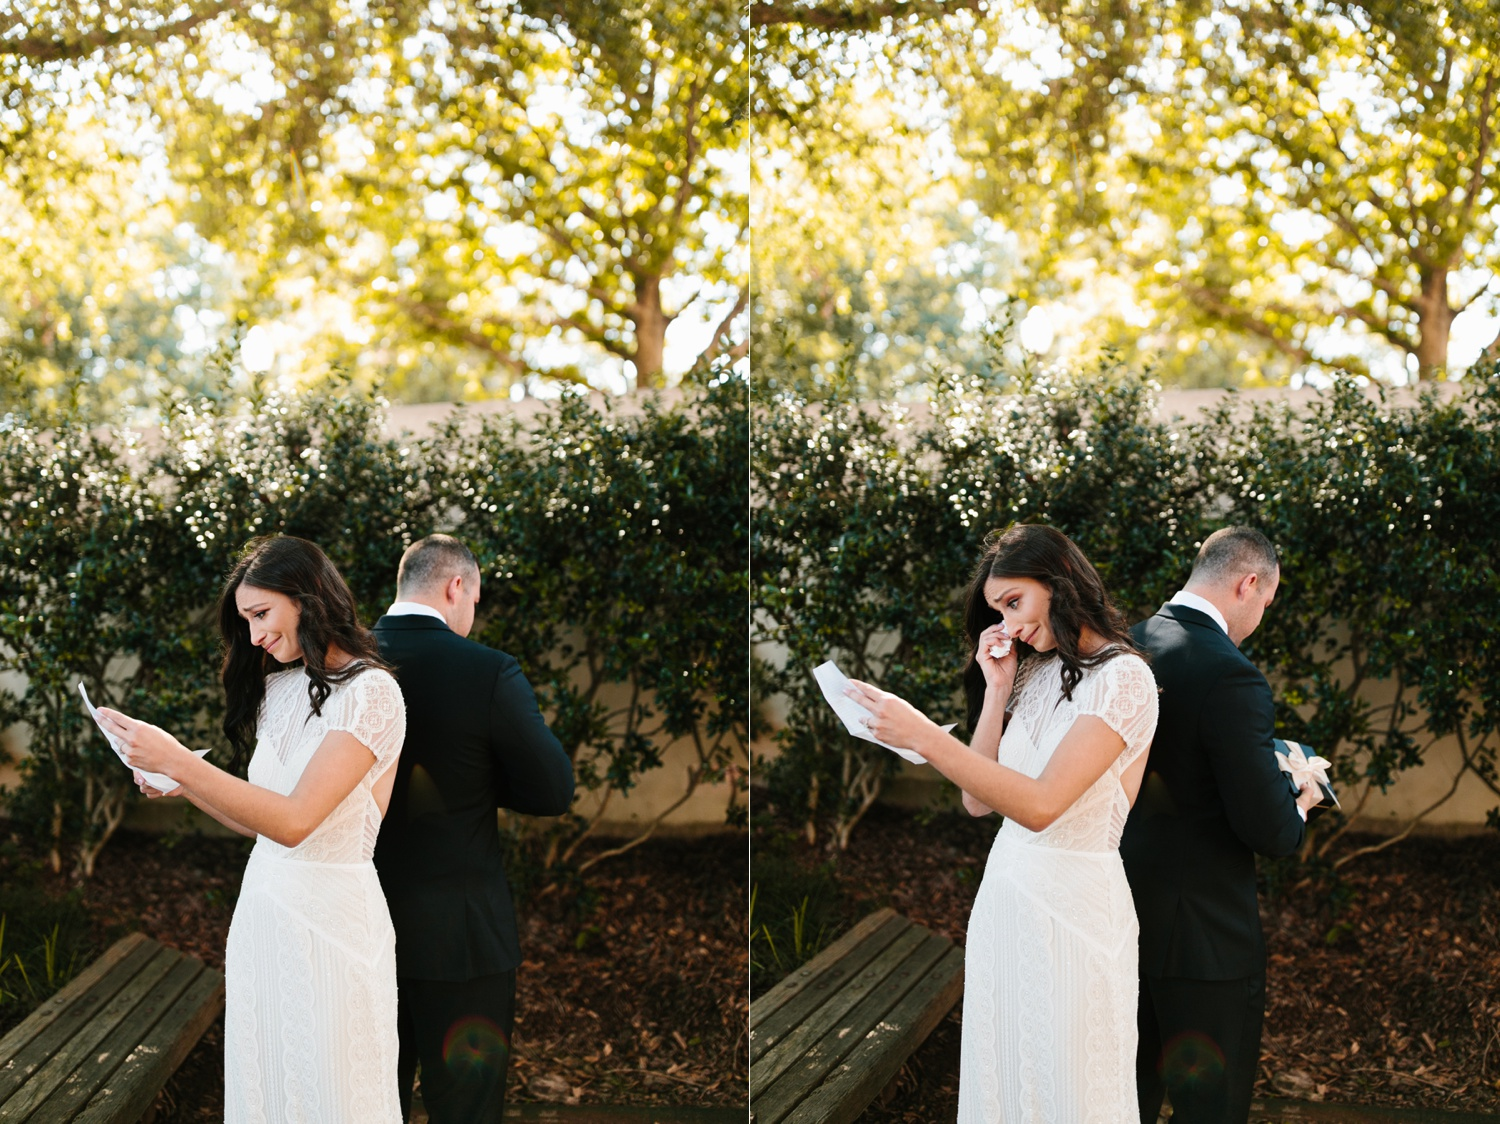 Kadee + Tyler | a raw, emotional wedding at the Filter Building on White Rock Lake in Dallas, TX by North Texas Wedding Photographer, Rachel Meagan Photography 048